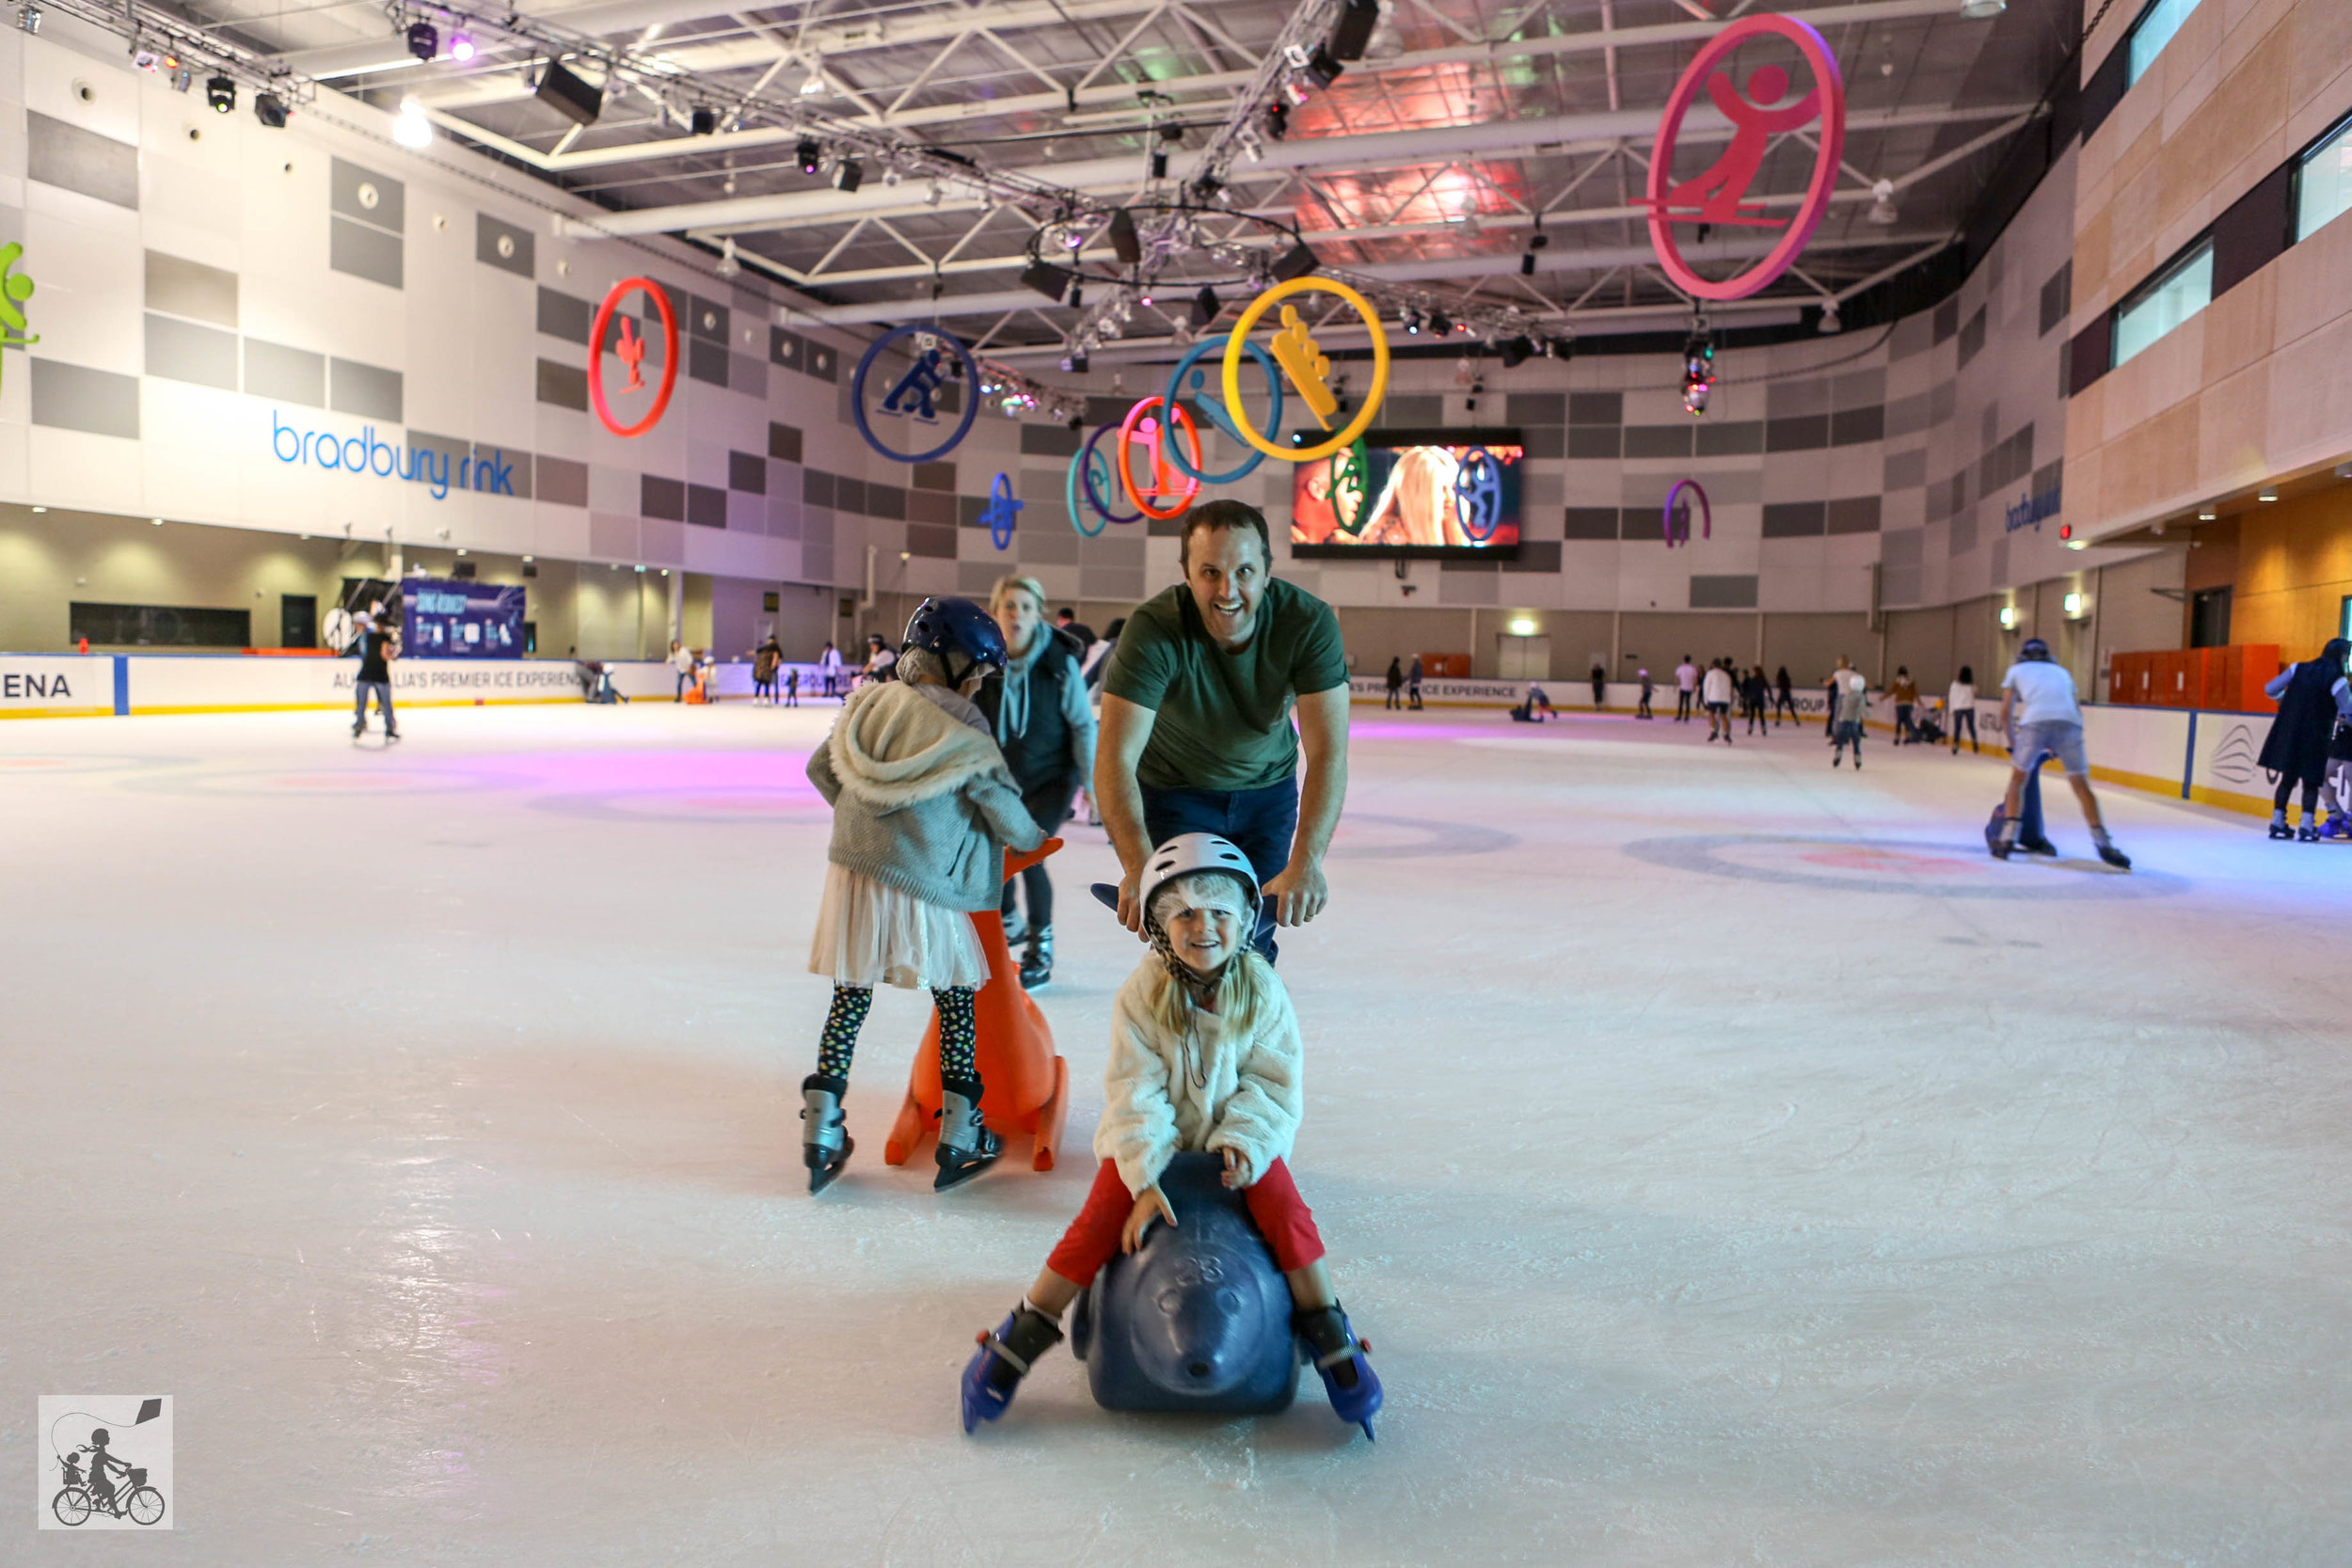 Obriens Skate Centre - Mamma Knows West (4 of 8).jpg